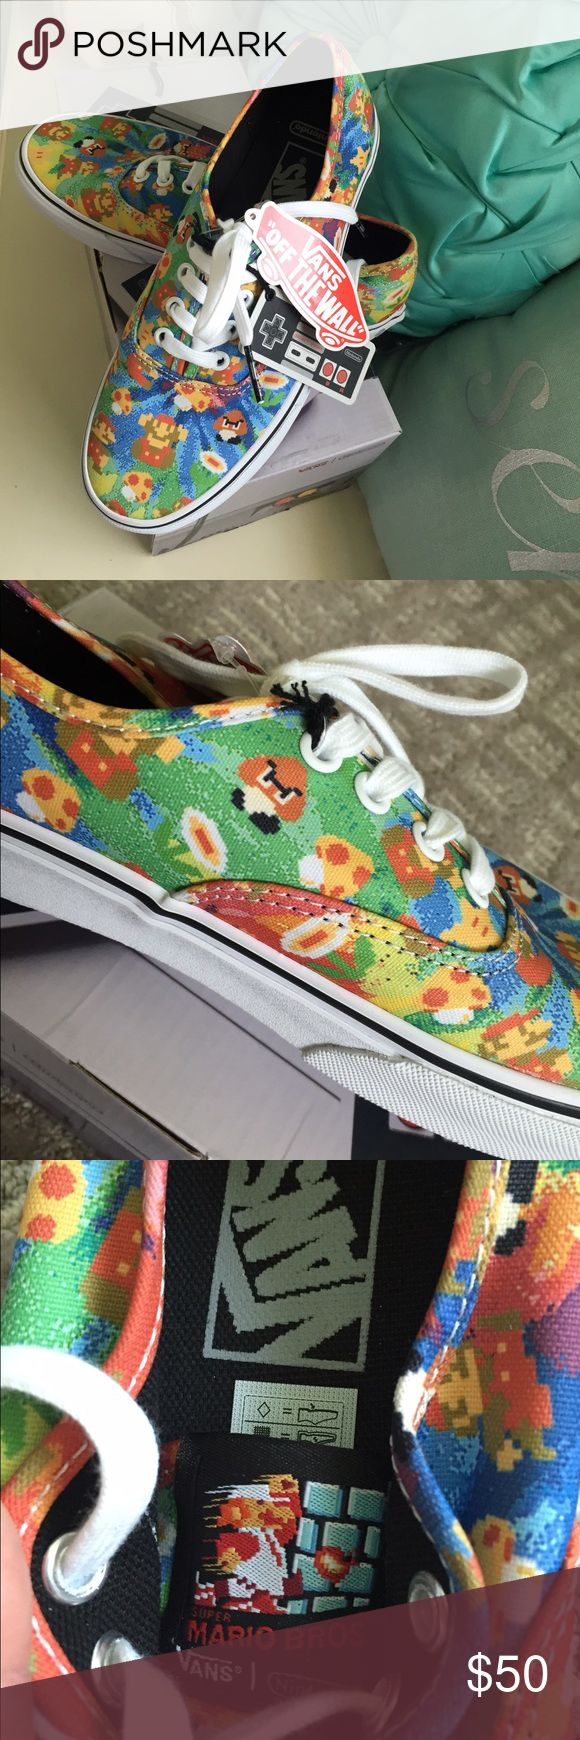 TEMPORARY PRICE NEW Nintendo Super Mario Bros Vans Authentic and brand new with tags - Nintendo Mario Brothers Vans. They come with a collectible gaming system box and exclusive Mario Brothers tag. Perfect for the gamer or the Vans enthusiast. Limited edition! No trades Vans Shoes Sneakers